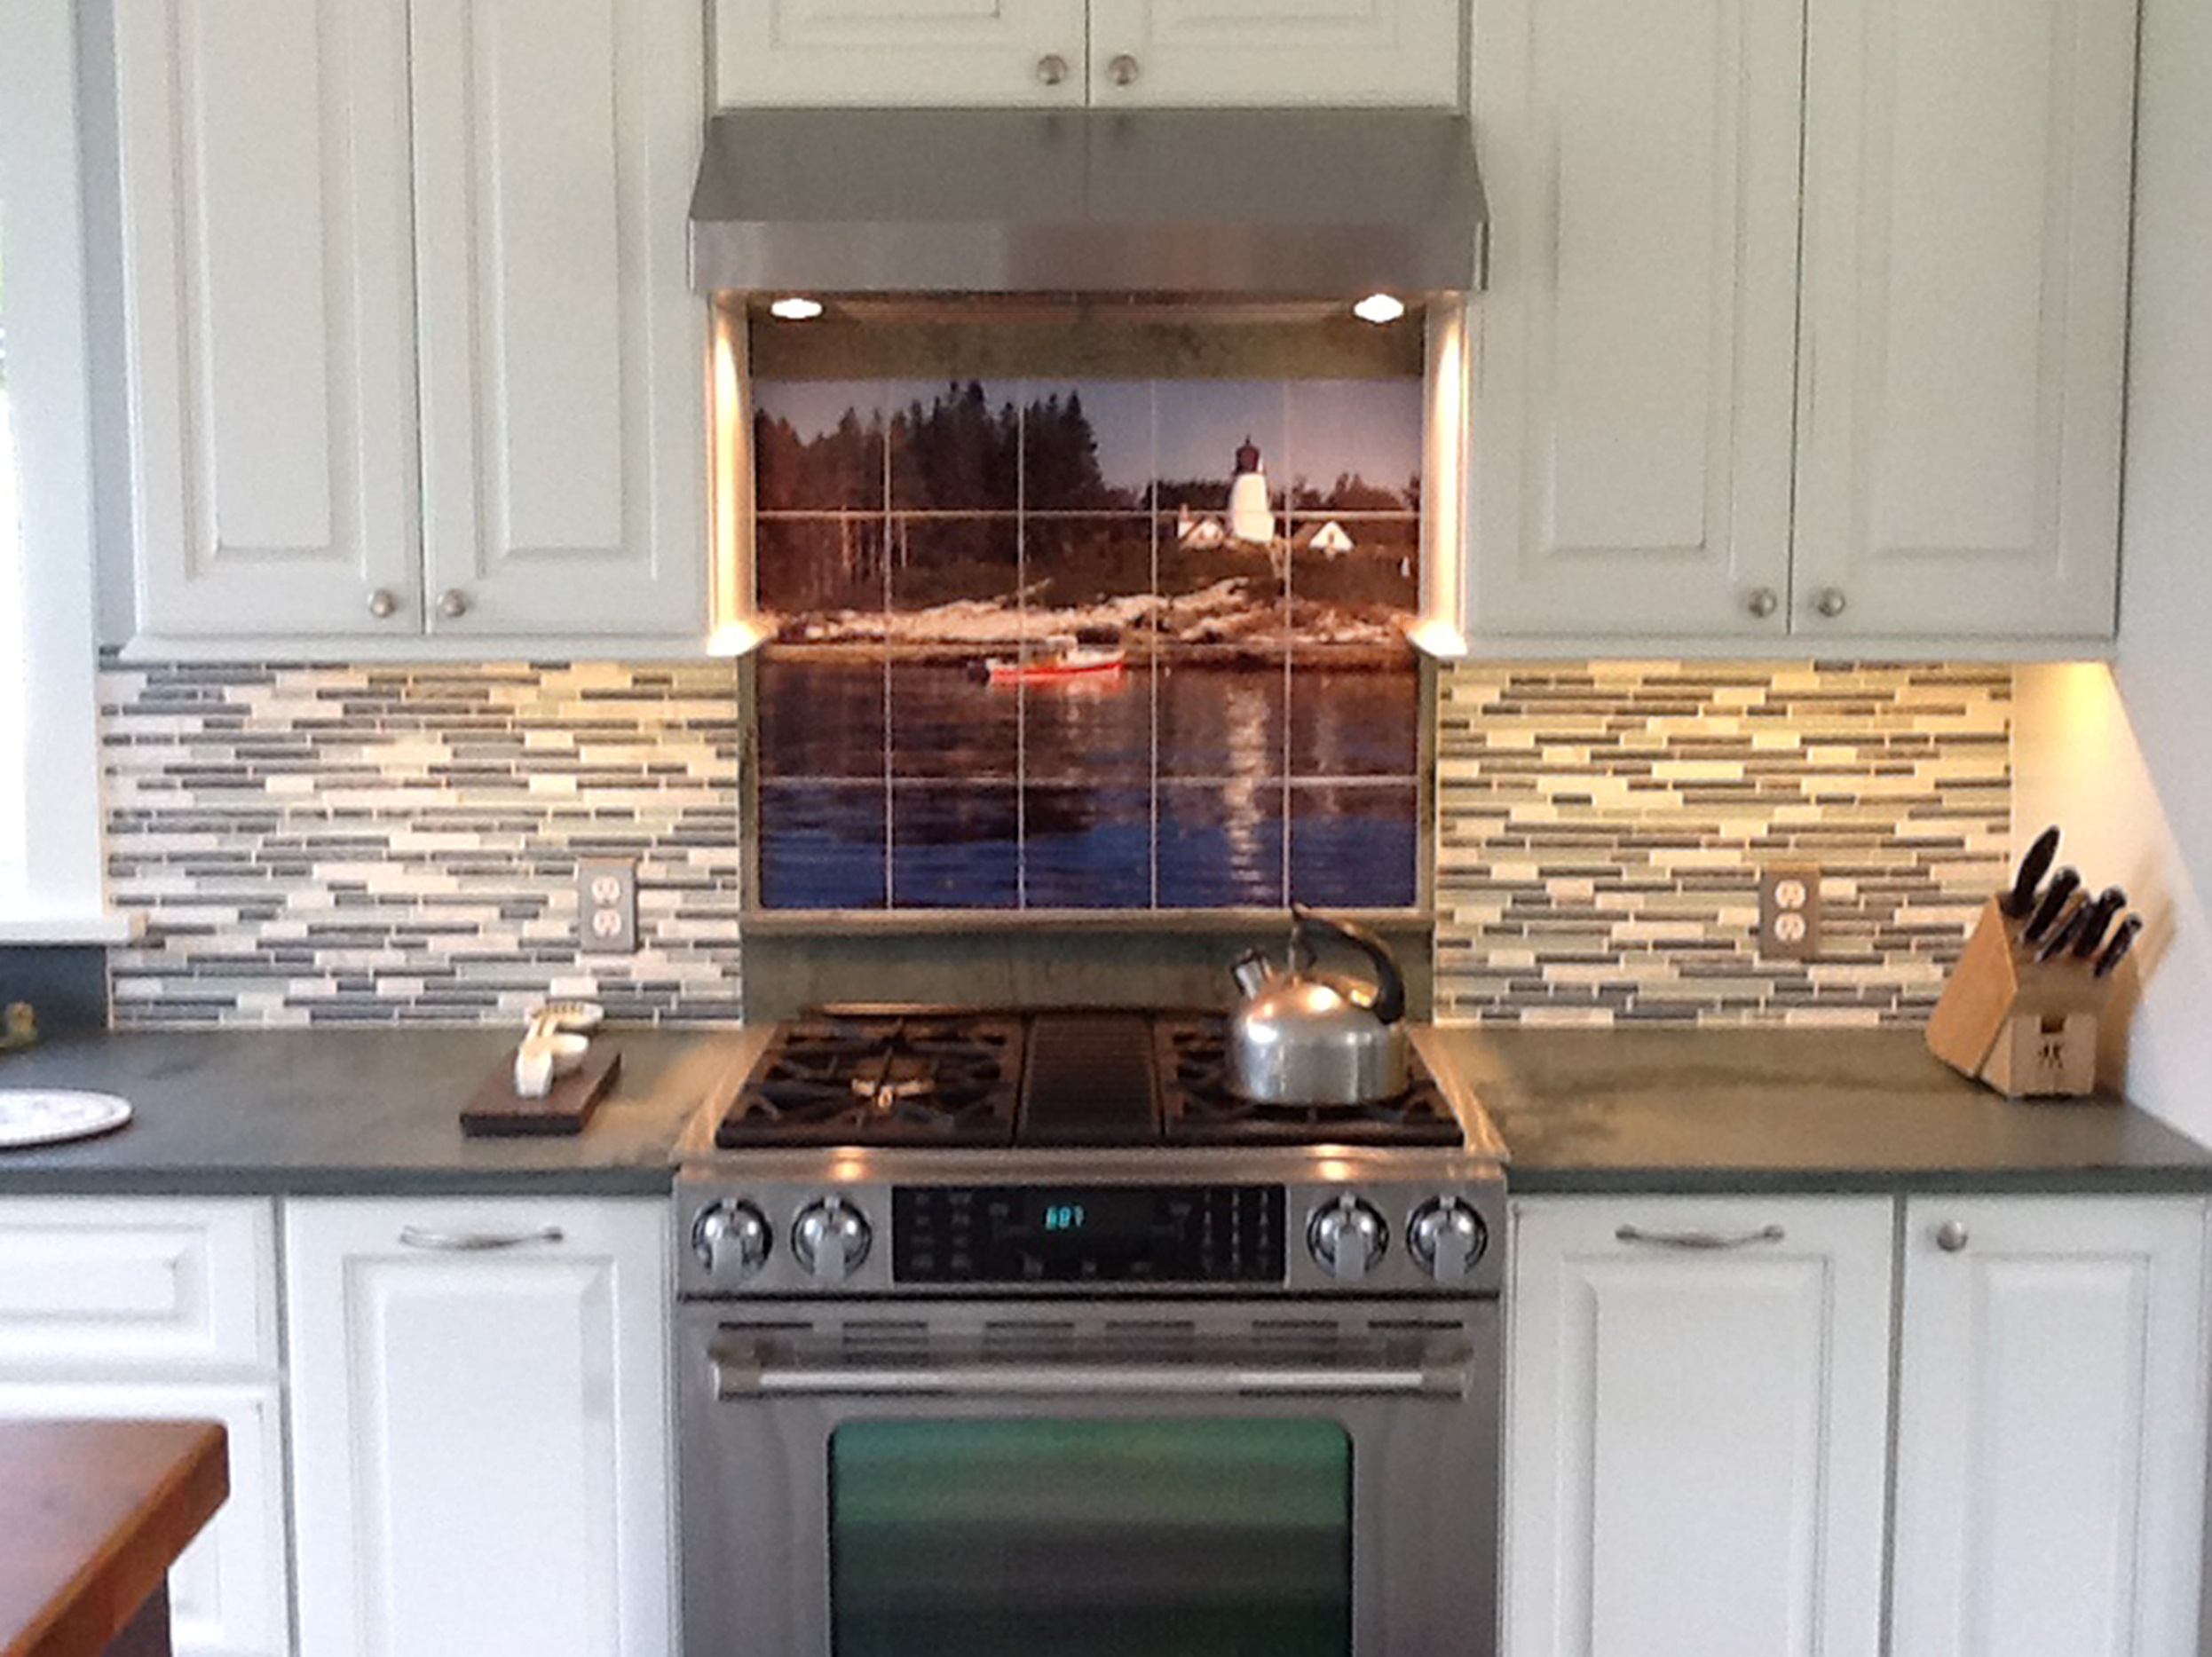 Lighthouse Custom Backsplash Tile Mural